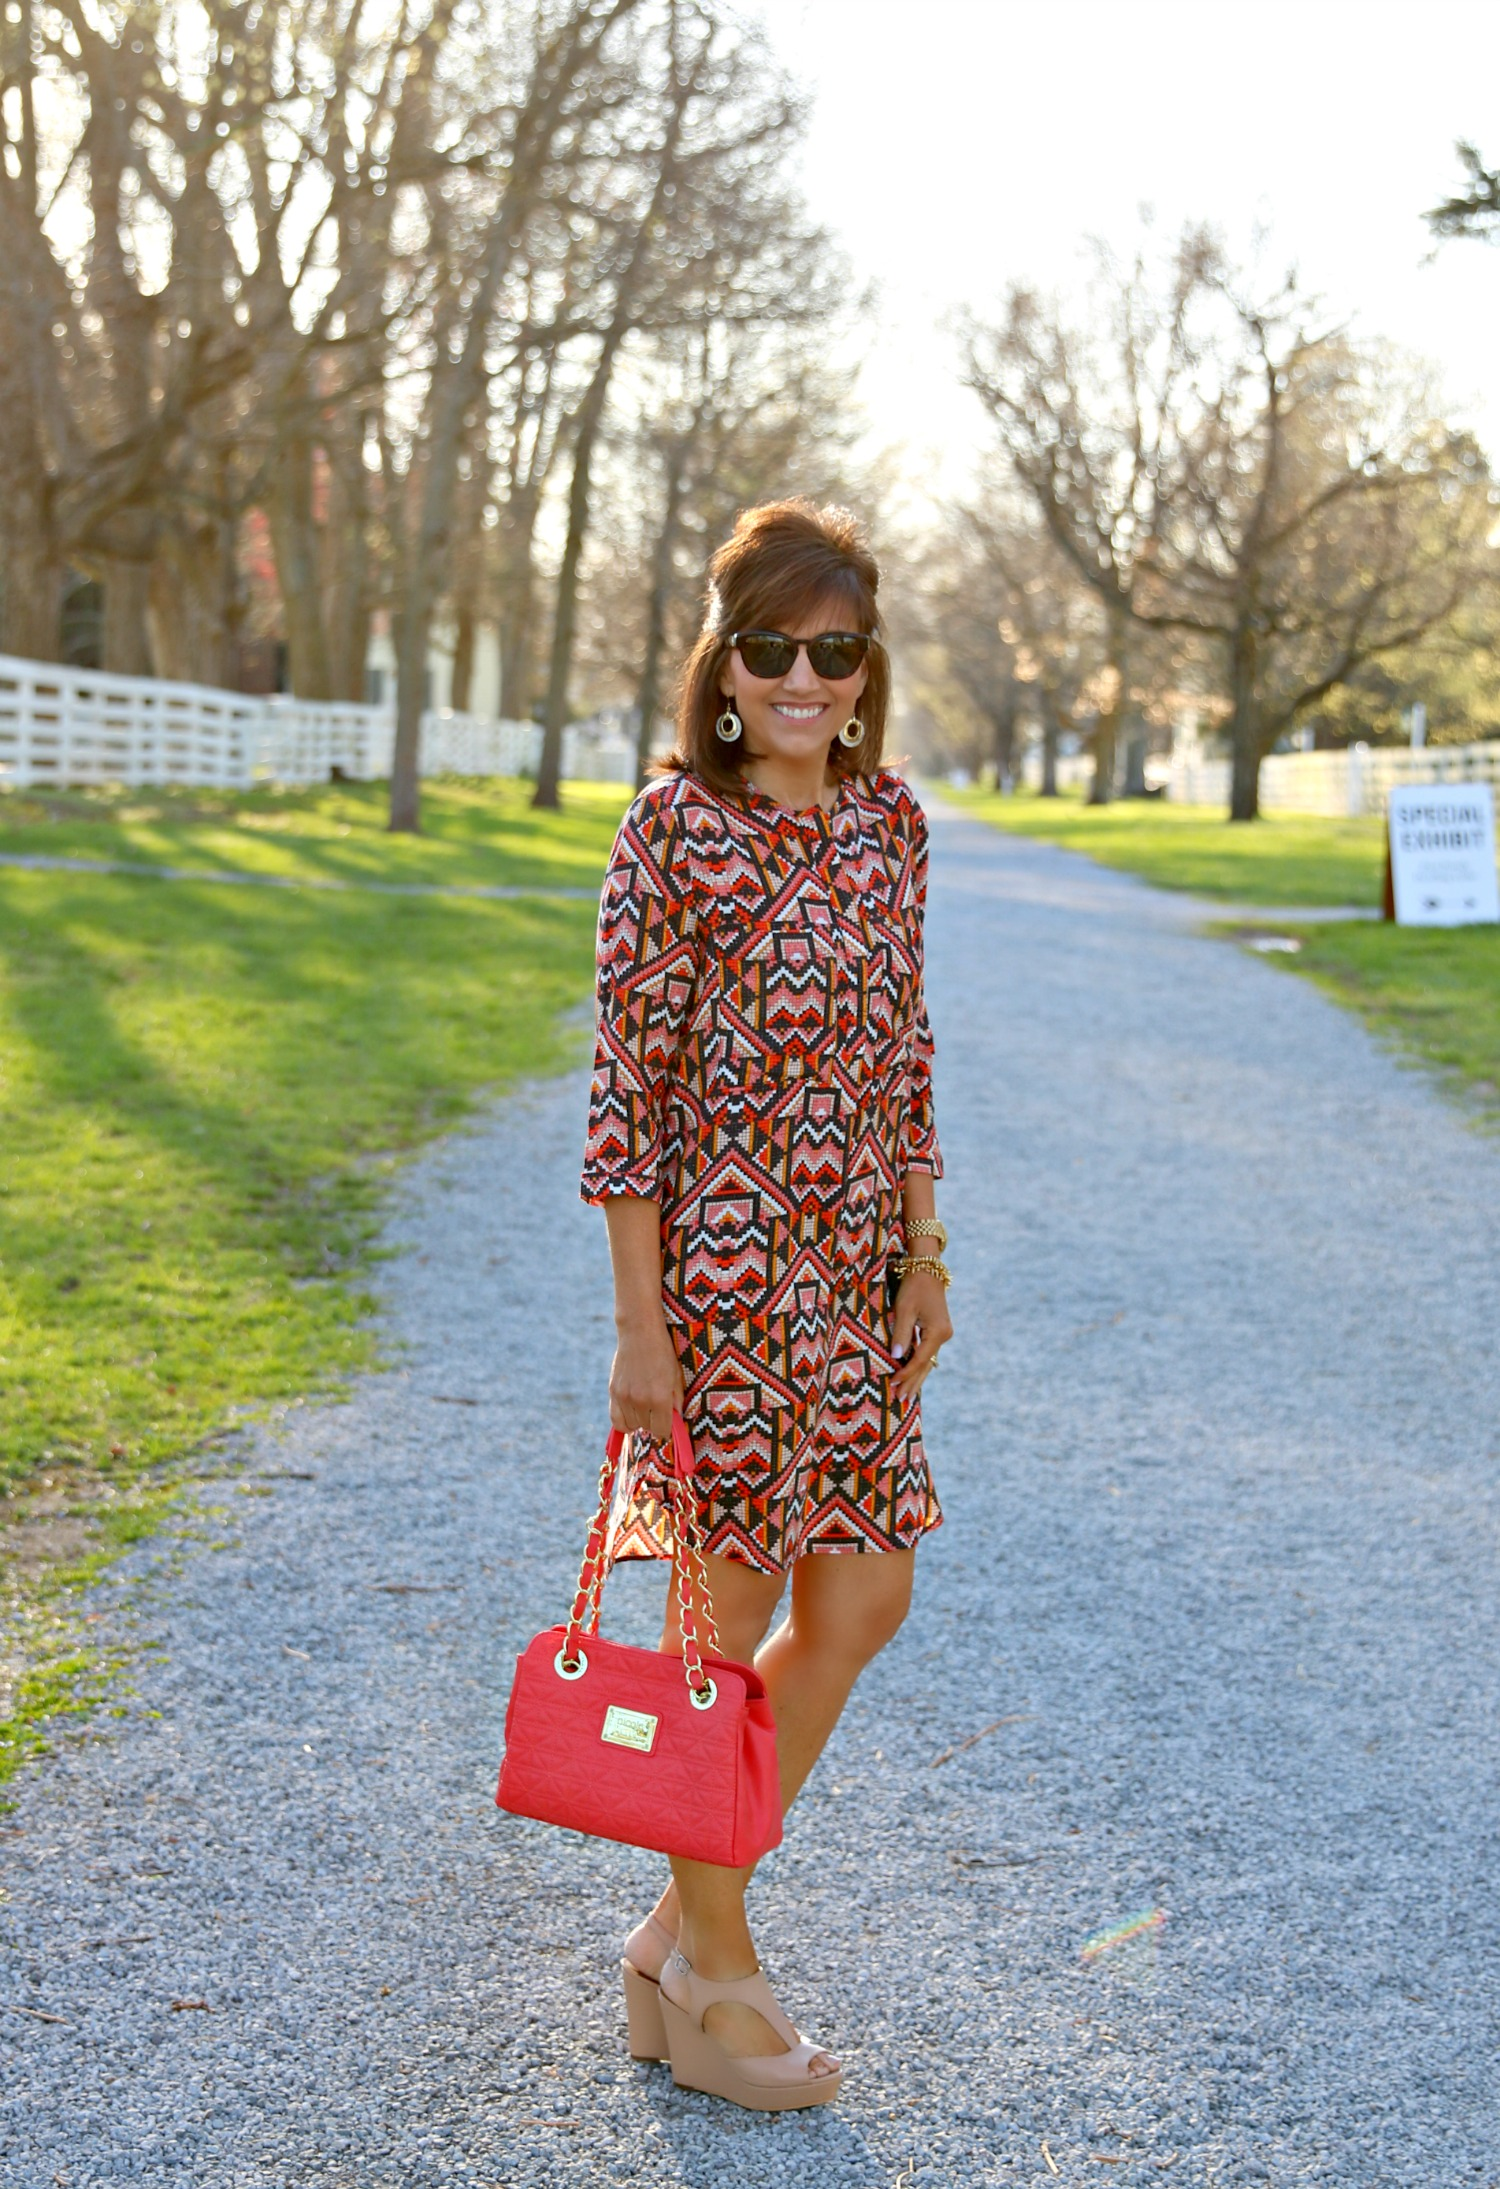 27 Days of Spring Fashion: Spring Dress from H&M